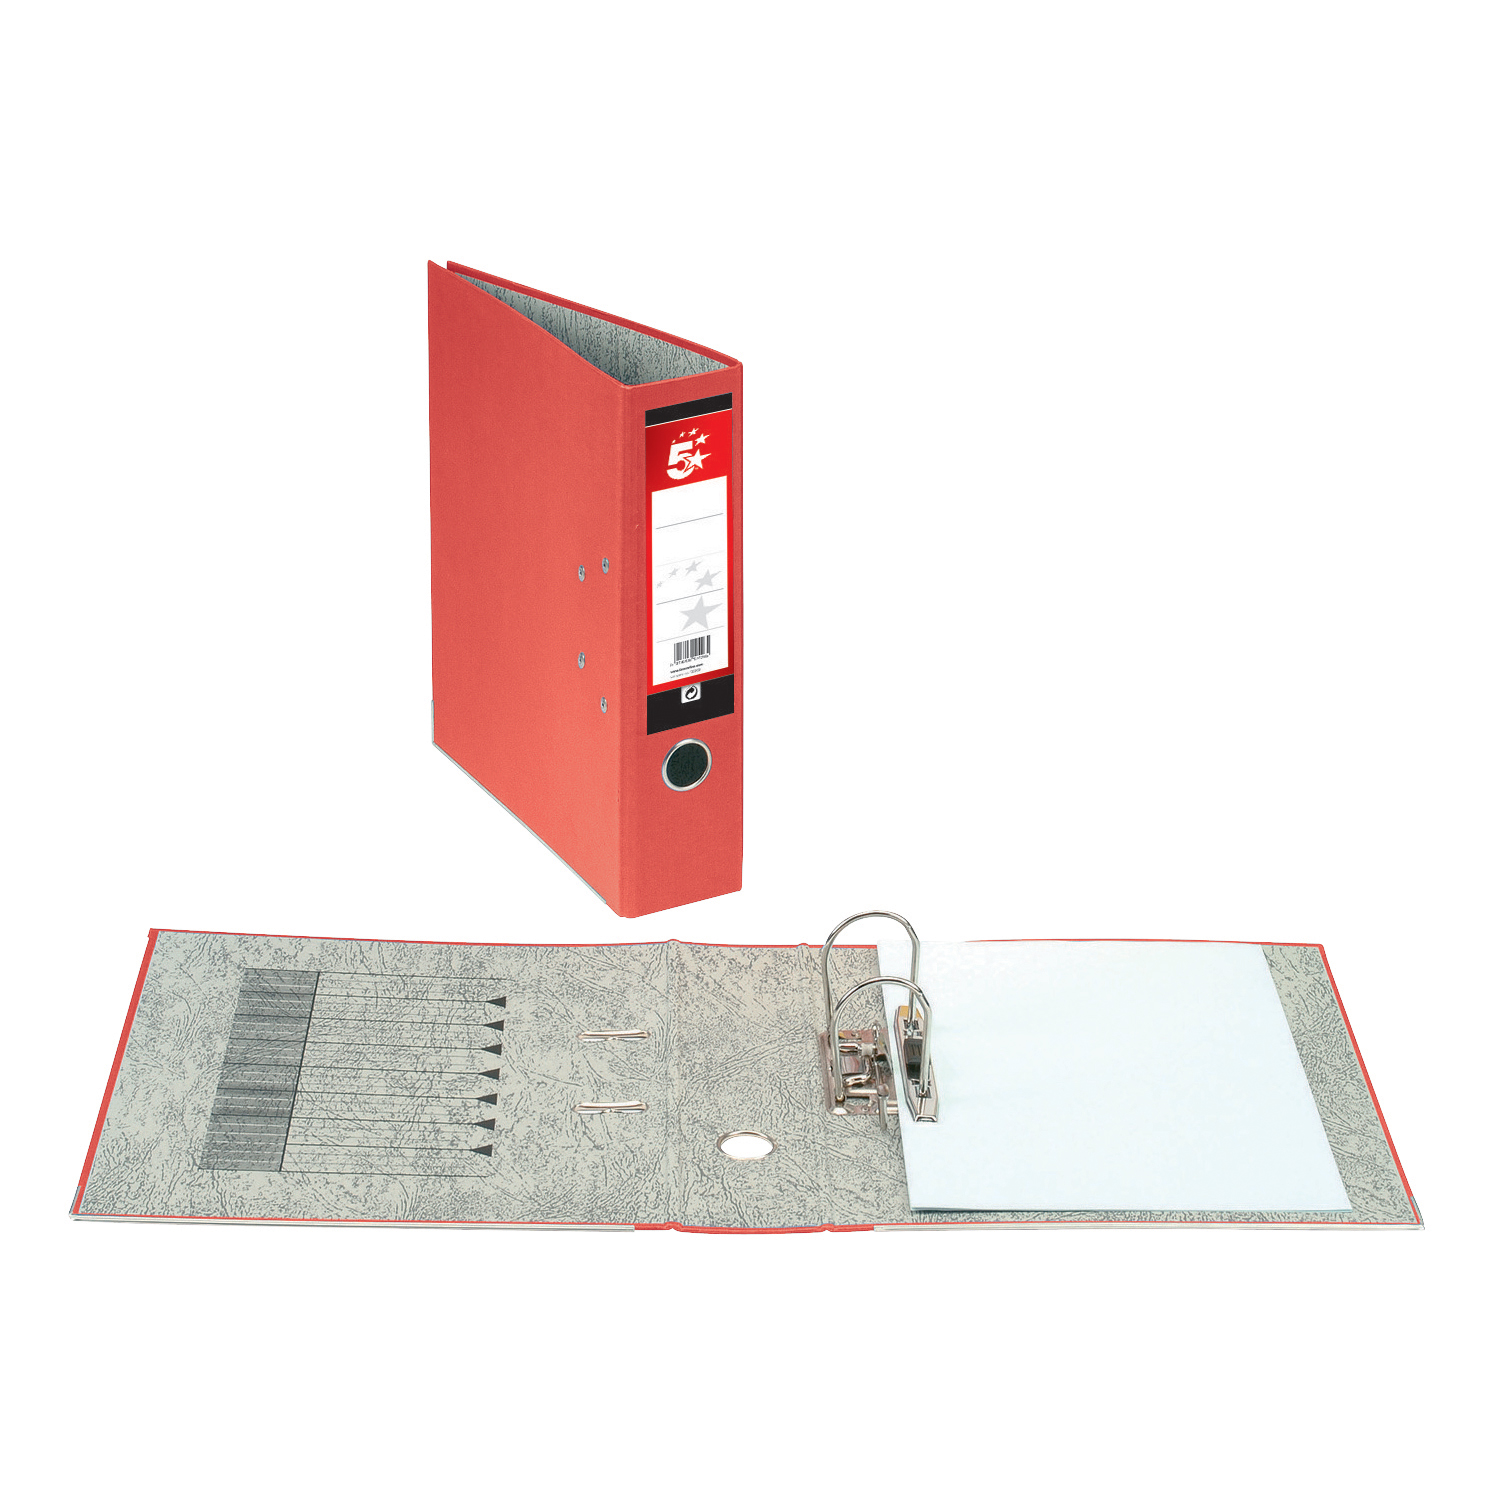 5 Star Office Lever Arch File 70mm Foolscap Red